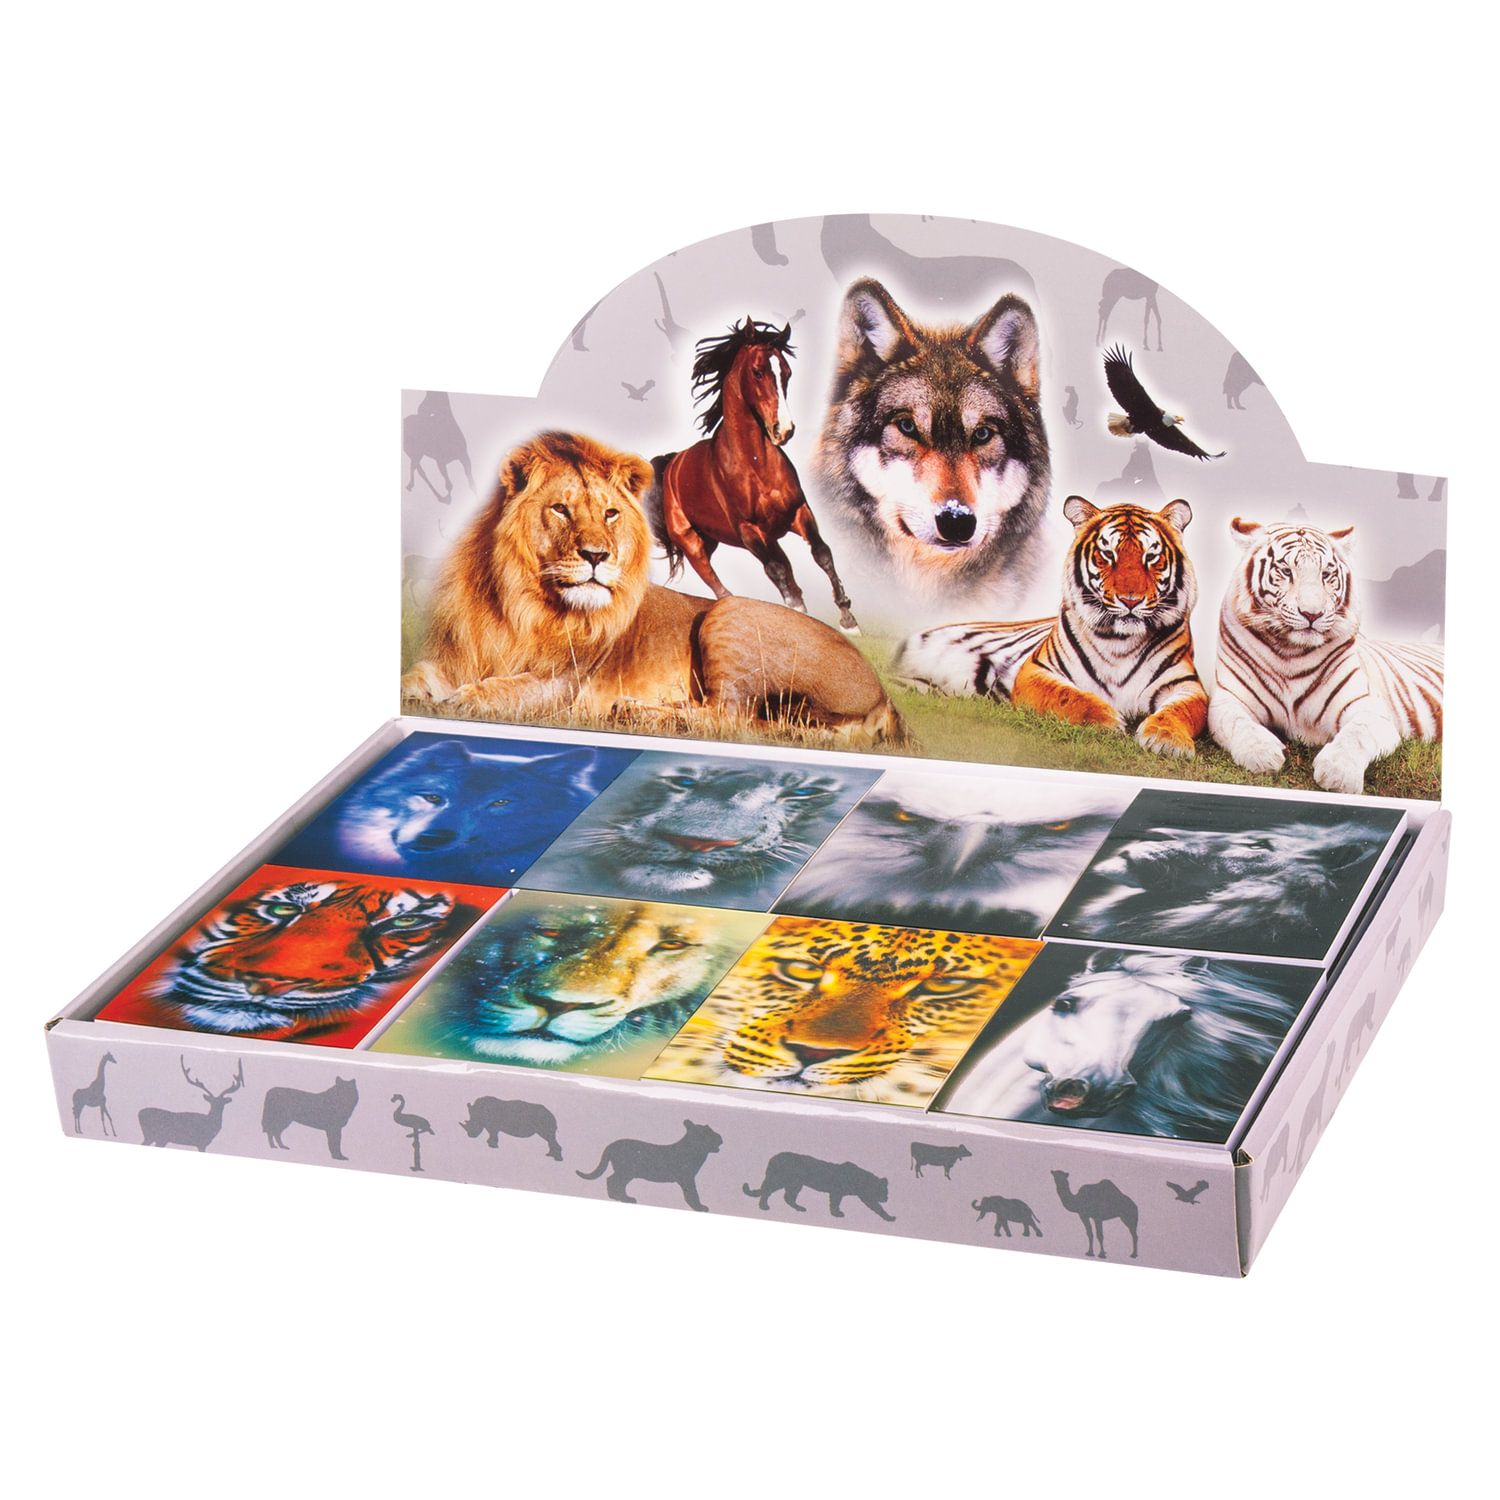 """BRAUBERG / Non-ruled notebook """"Animals"""" SMALL FORMAT 40 sheets A7, 64x82 mm, gluing, plastic 3D cover, assorted"""